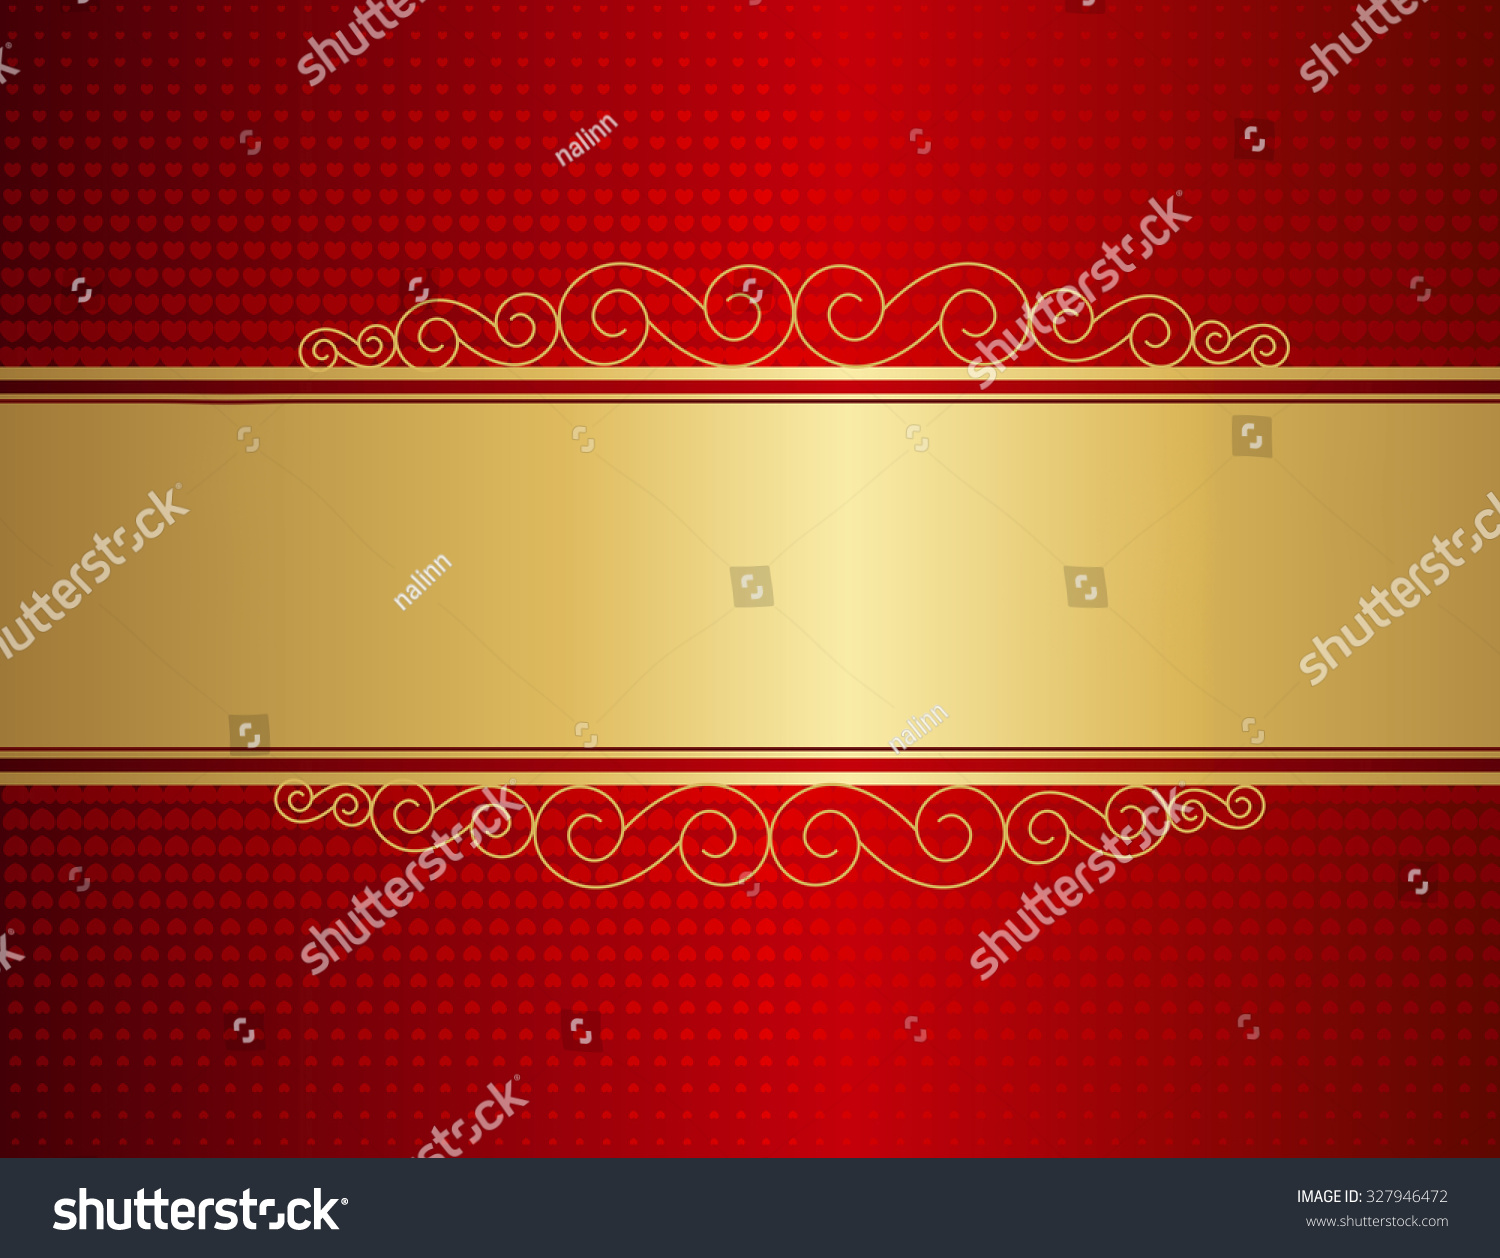 Elegant Wedding Invitation Anniversary Background Frame Stock ...